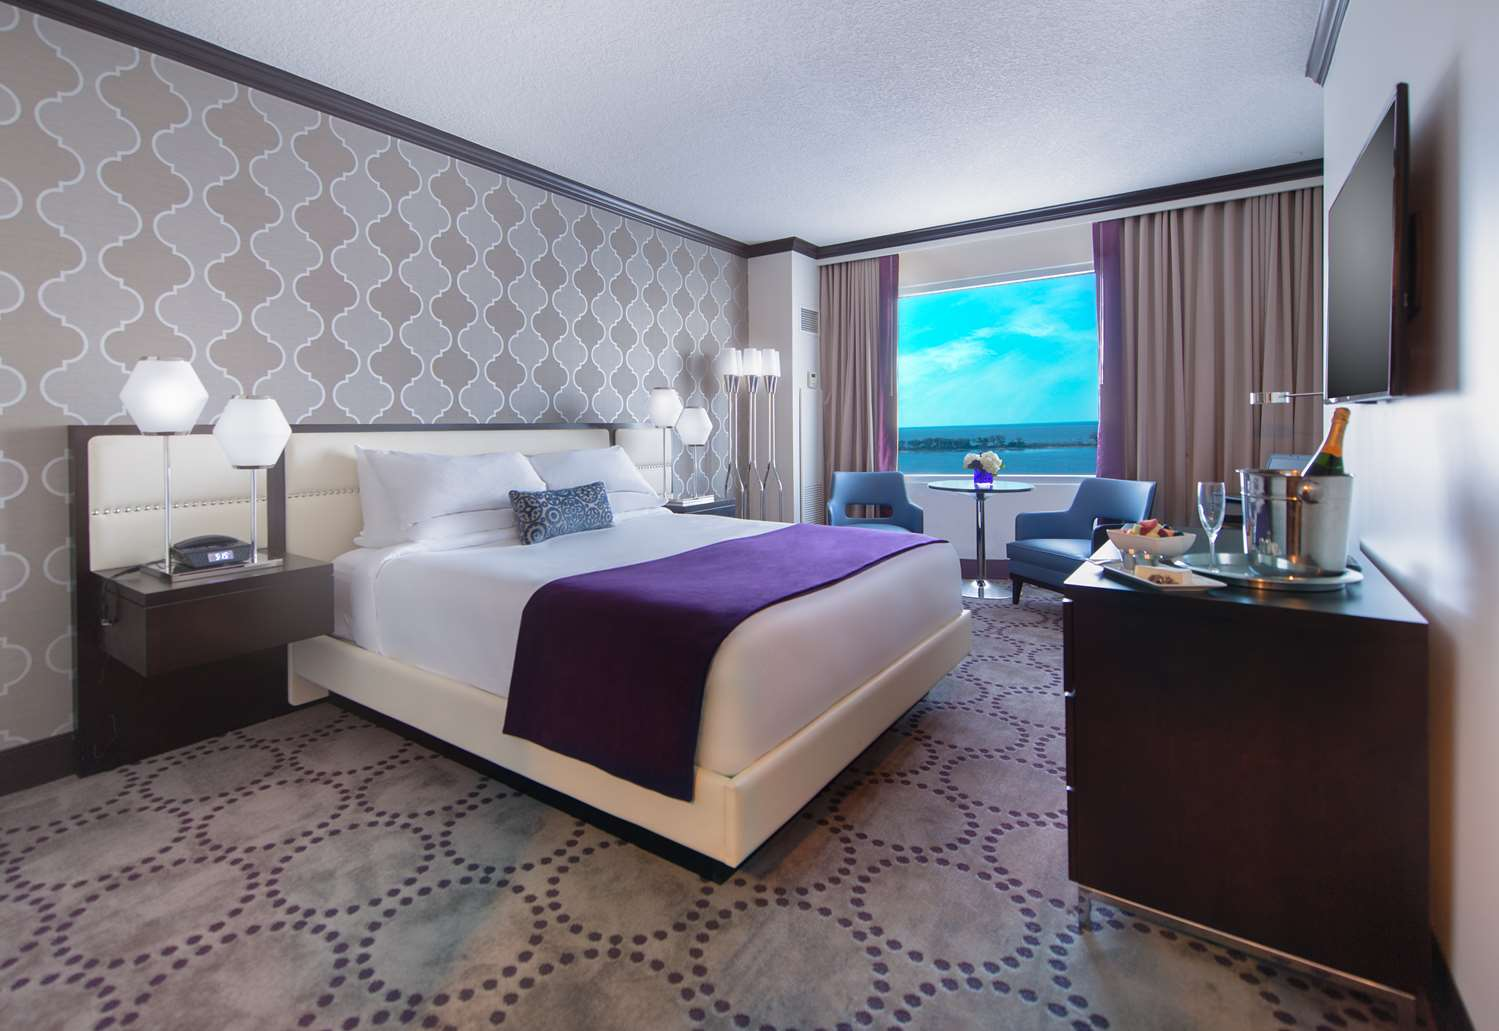 Room - Harrah's Gulf Coast Hotel Biloxi